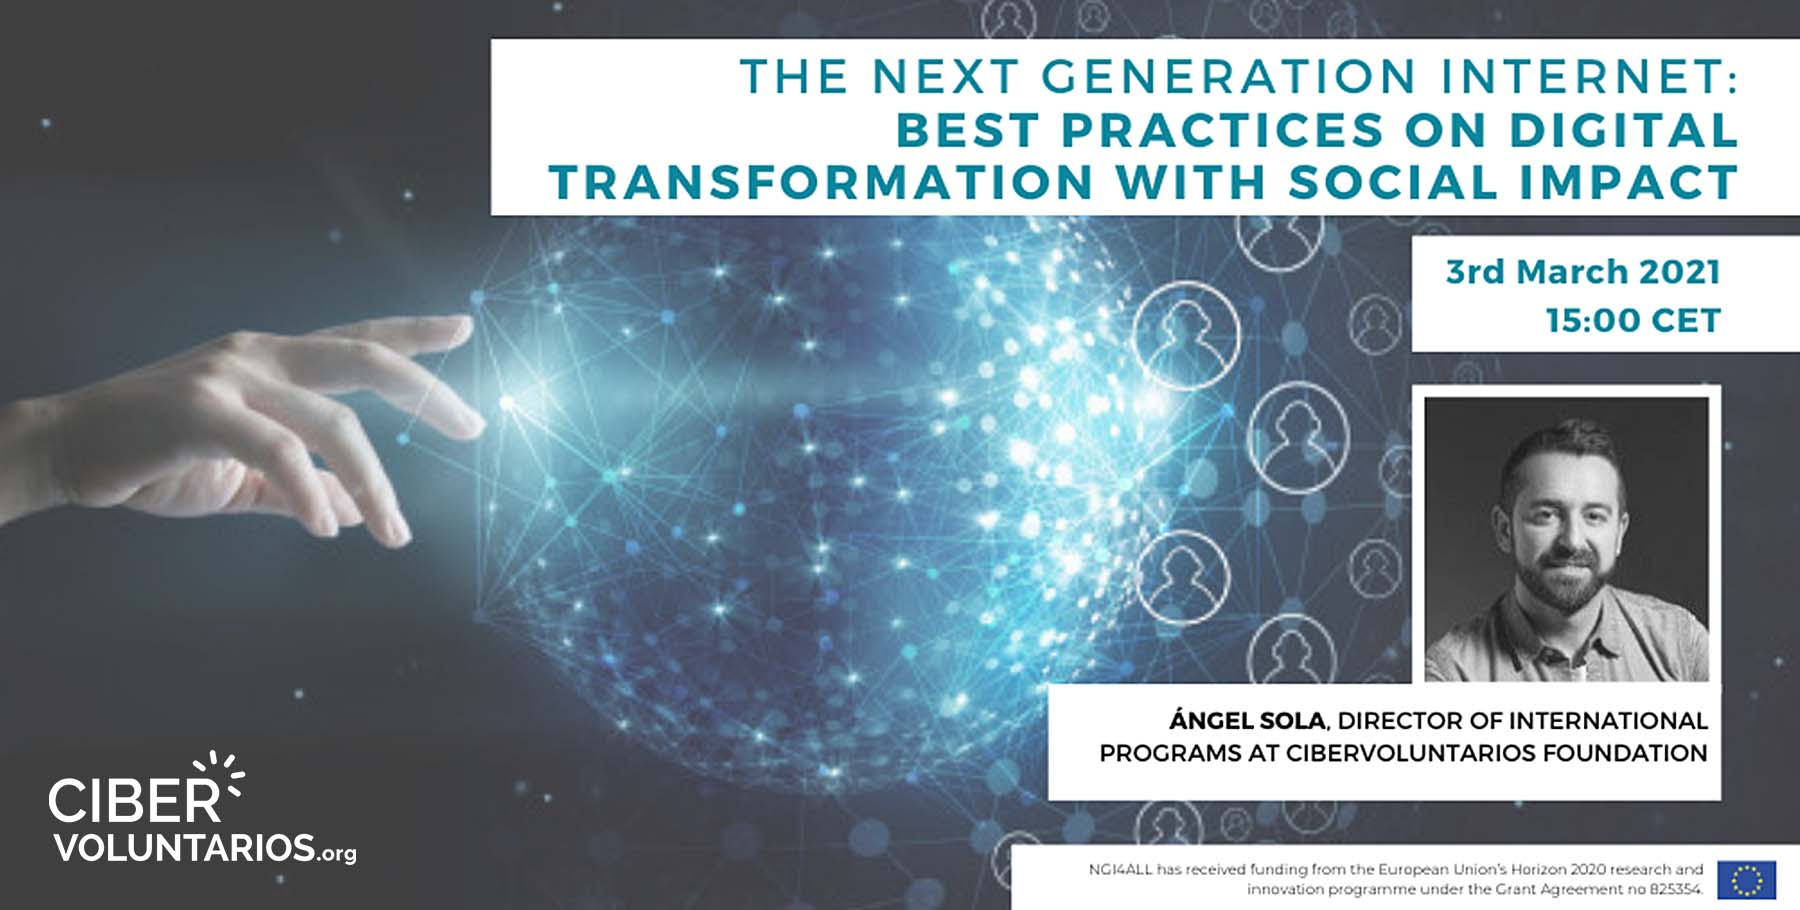 NGI Talks: Join our talk on digital transformation with social impact in Europe